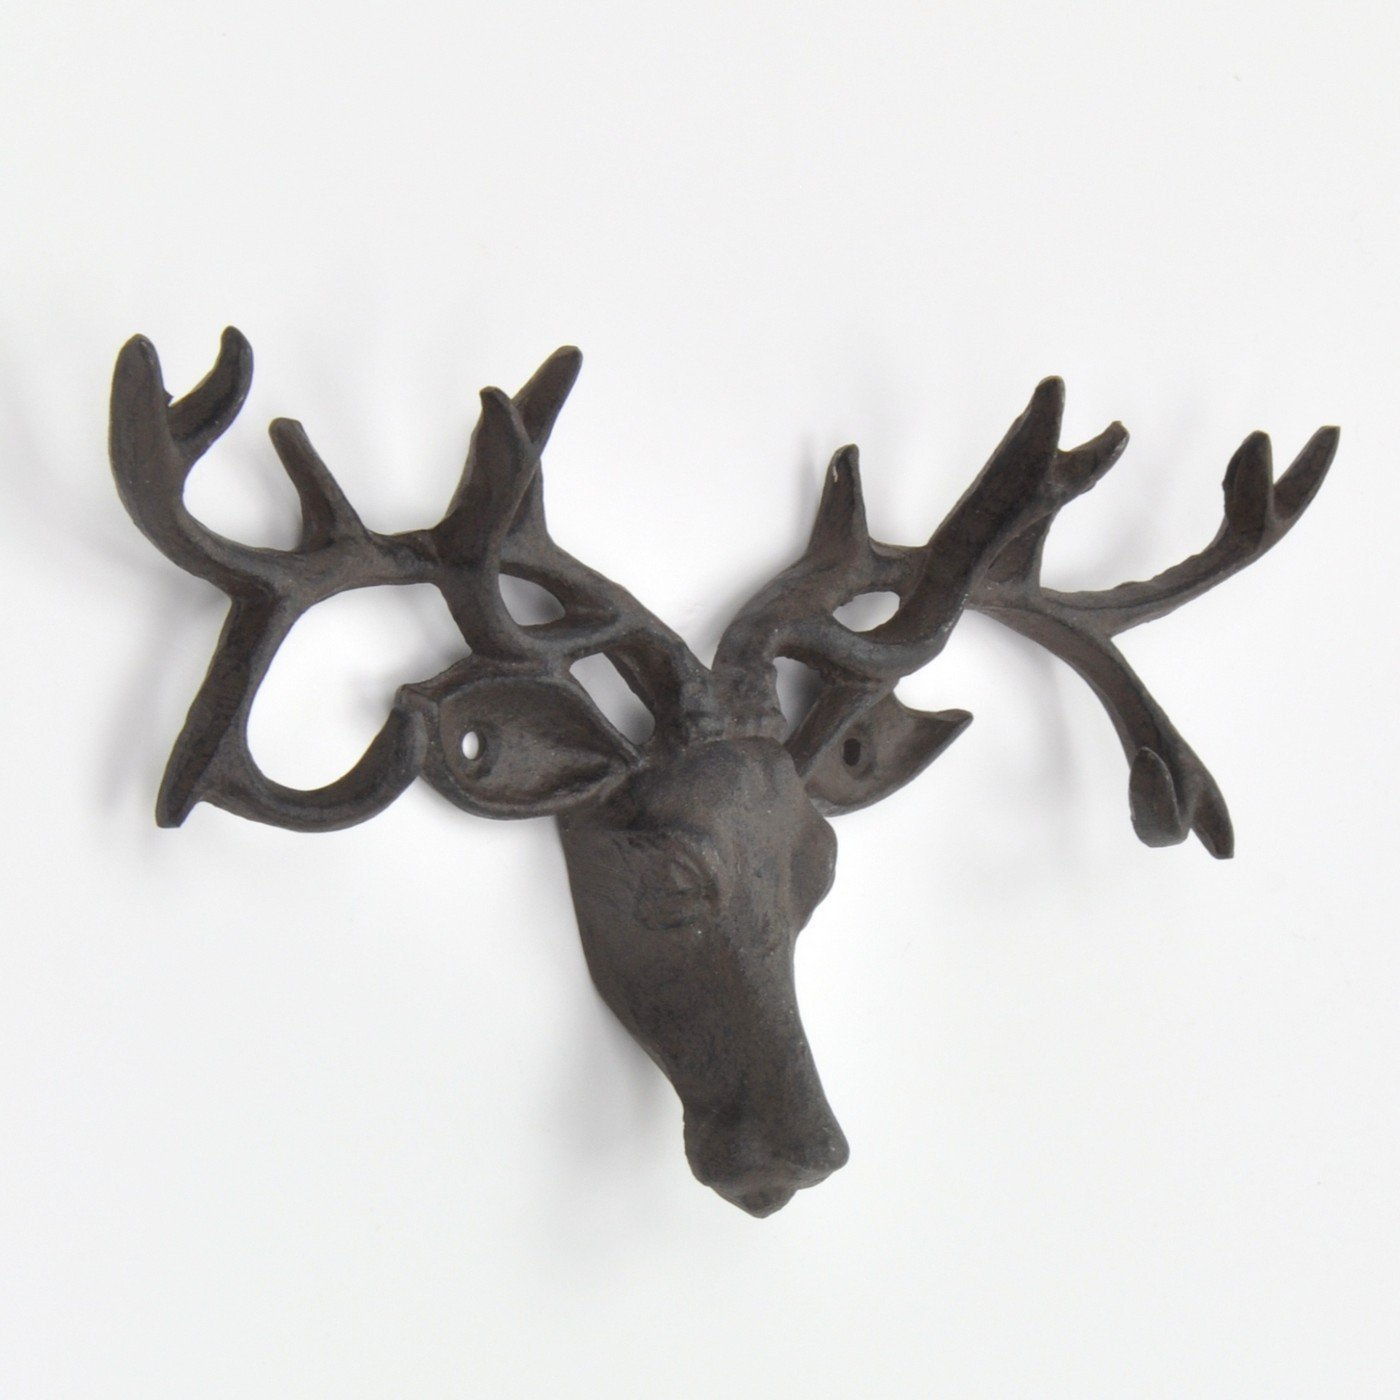 abodent.com Black Deer/Stag Head Antlers Coat Rack, Wall Rack, Coat Hook Rack, Coat Robe Hat Clothes Wall Mounted Hook Hanger (Screws)